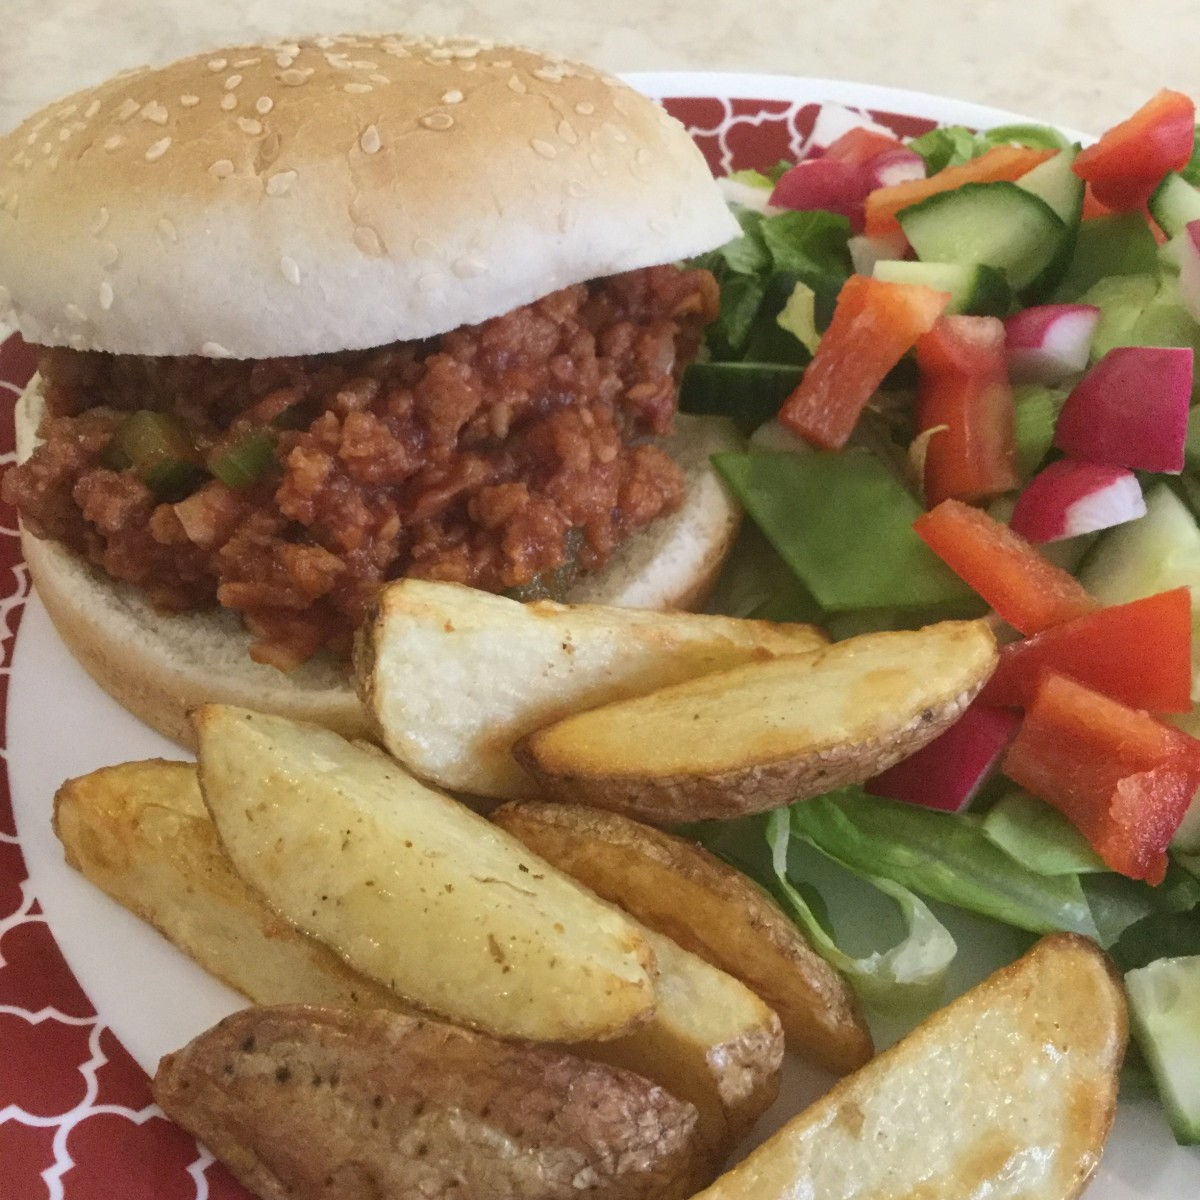 Vegan Sloppy Joe's, served with potato wedges and a green salad